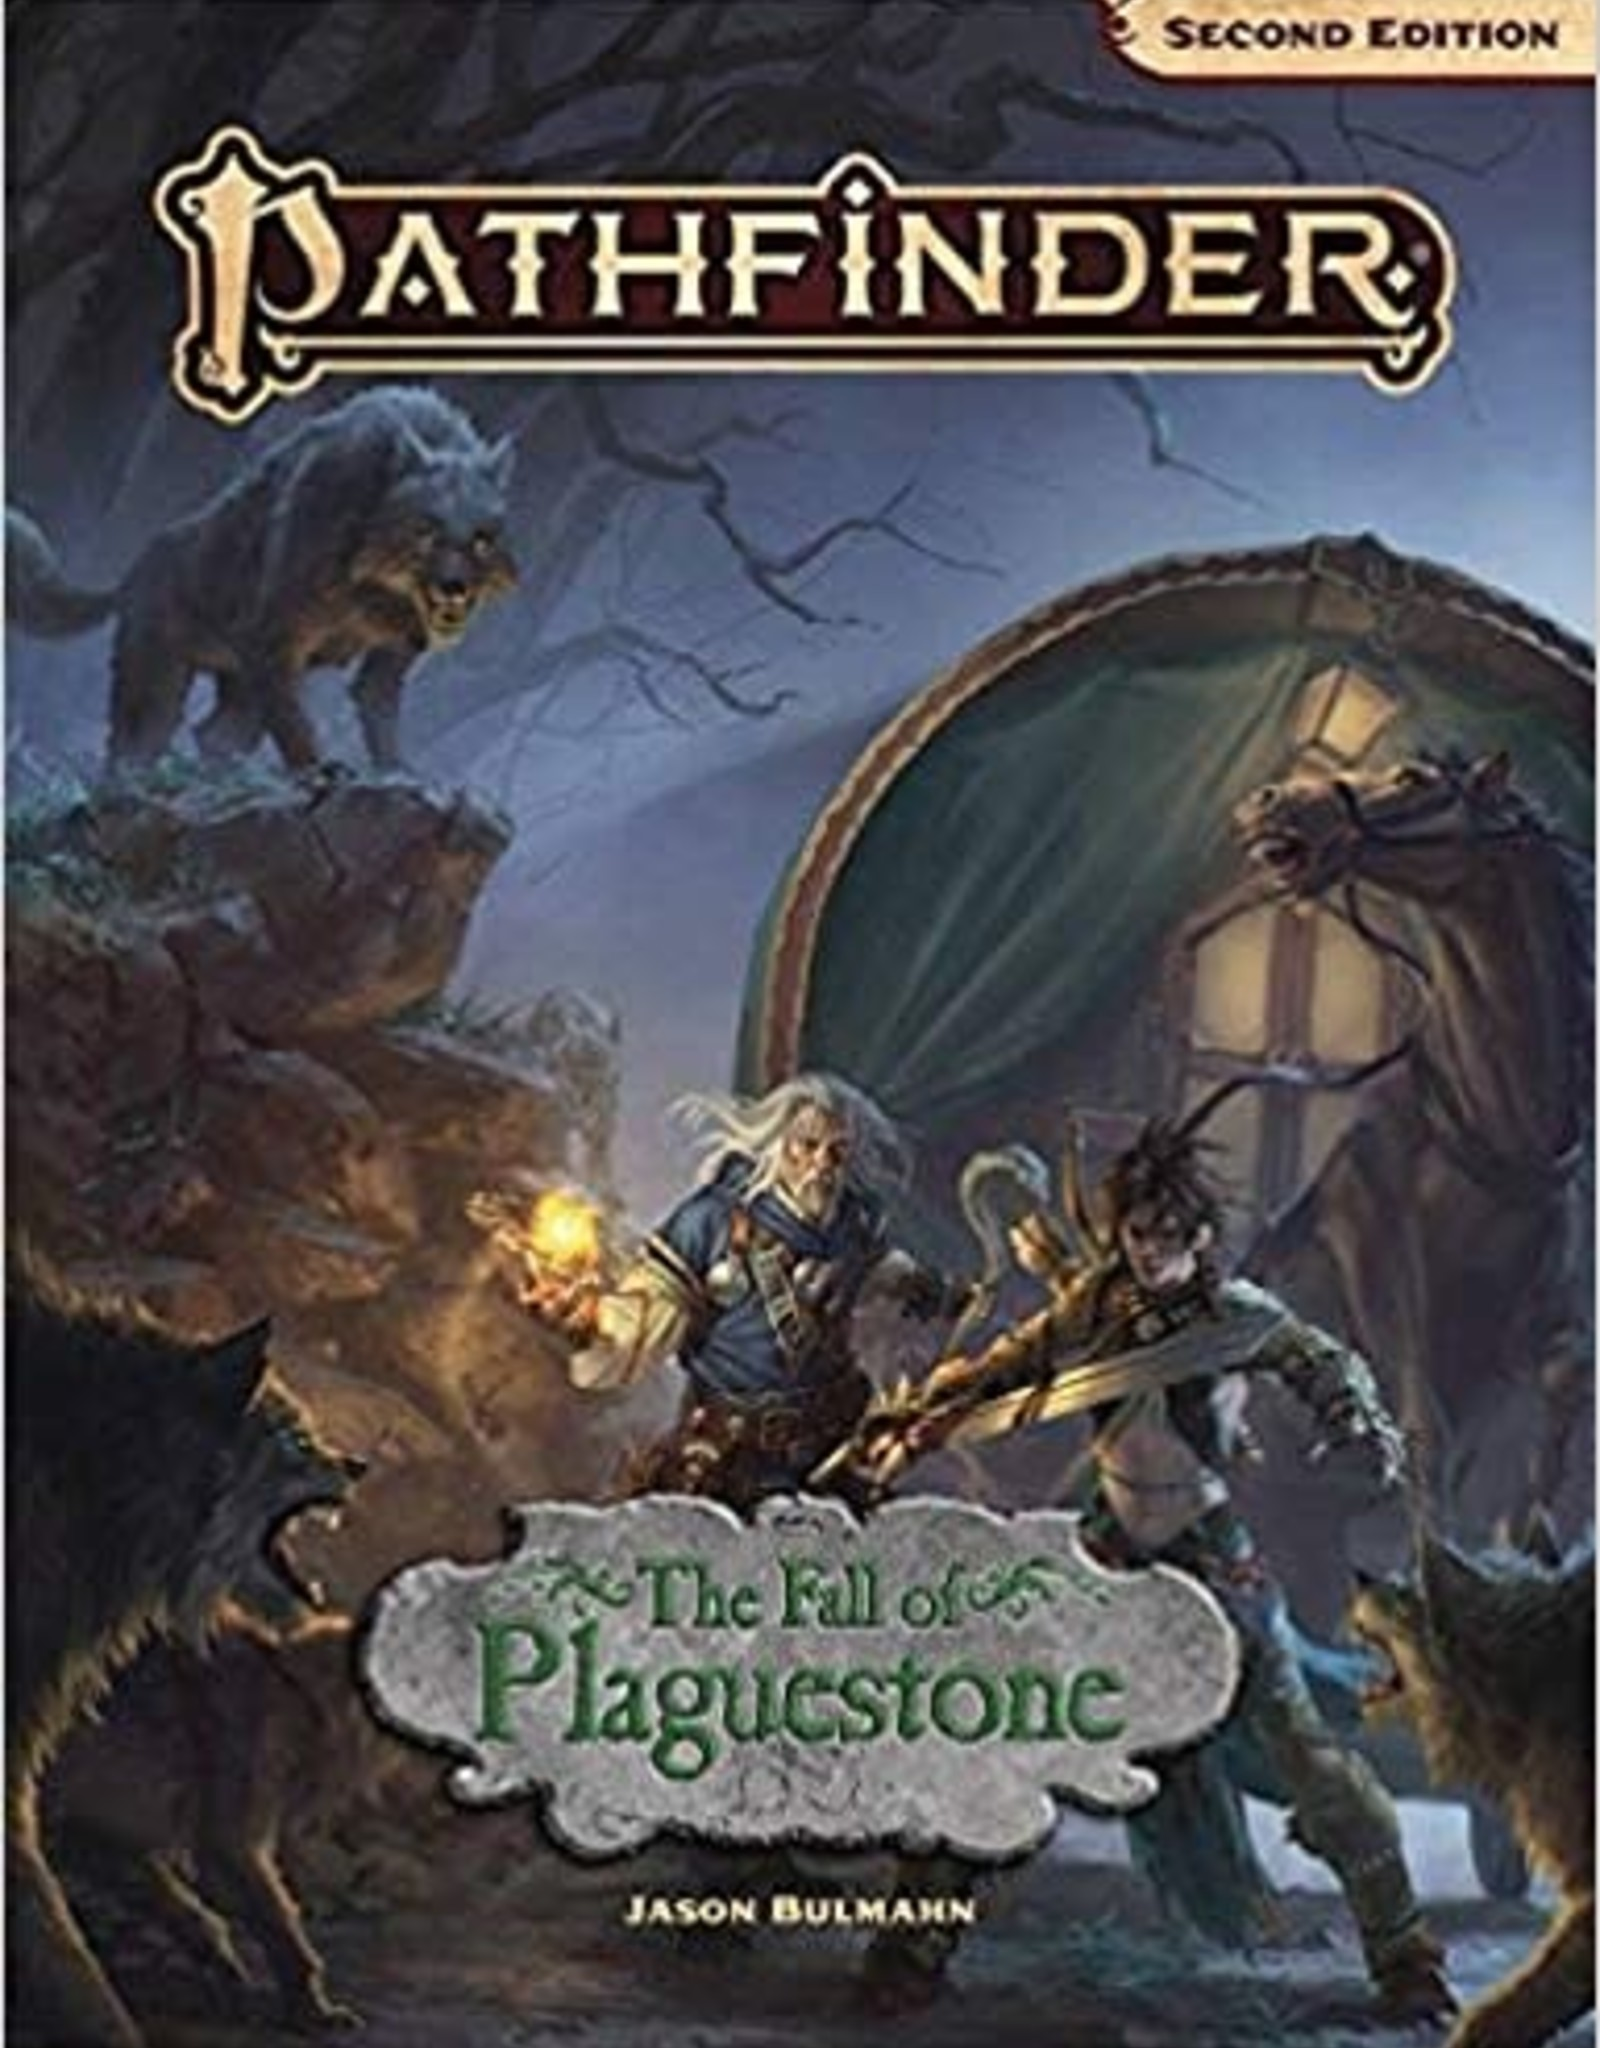 Pathfinder The Fall of Plaguestone